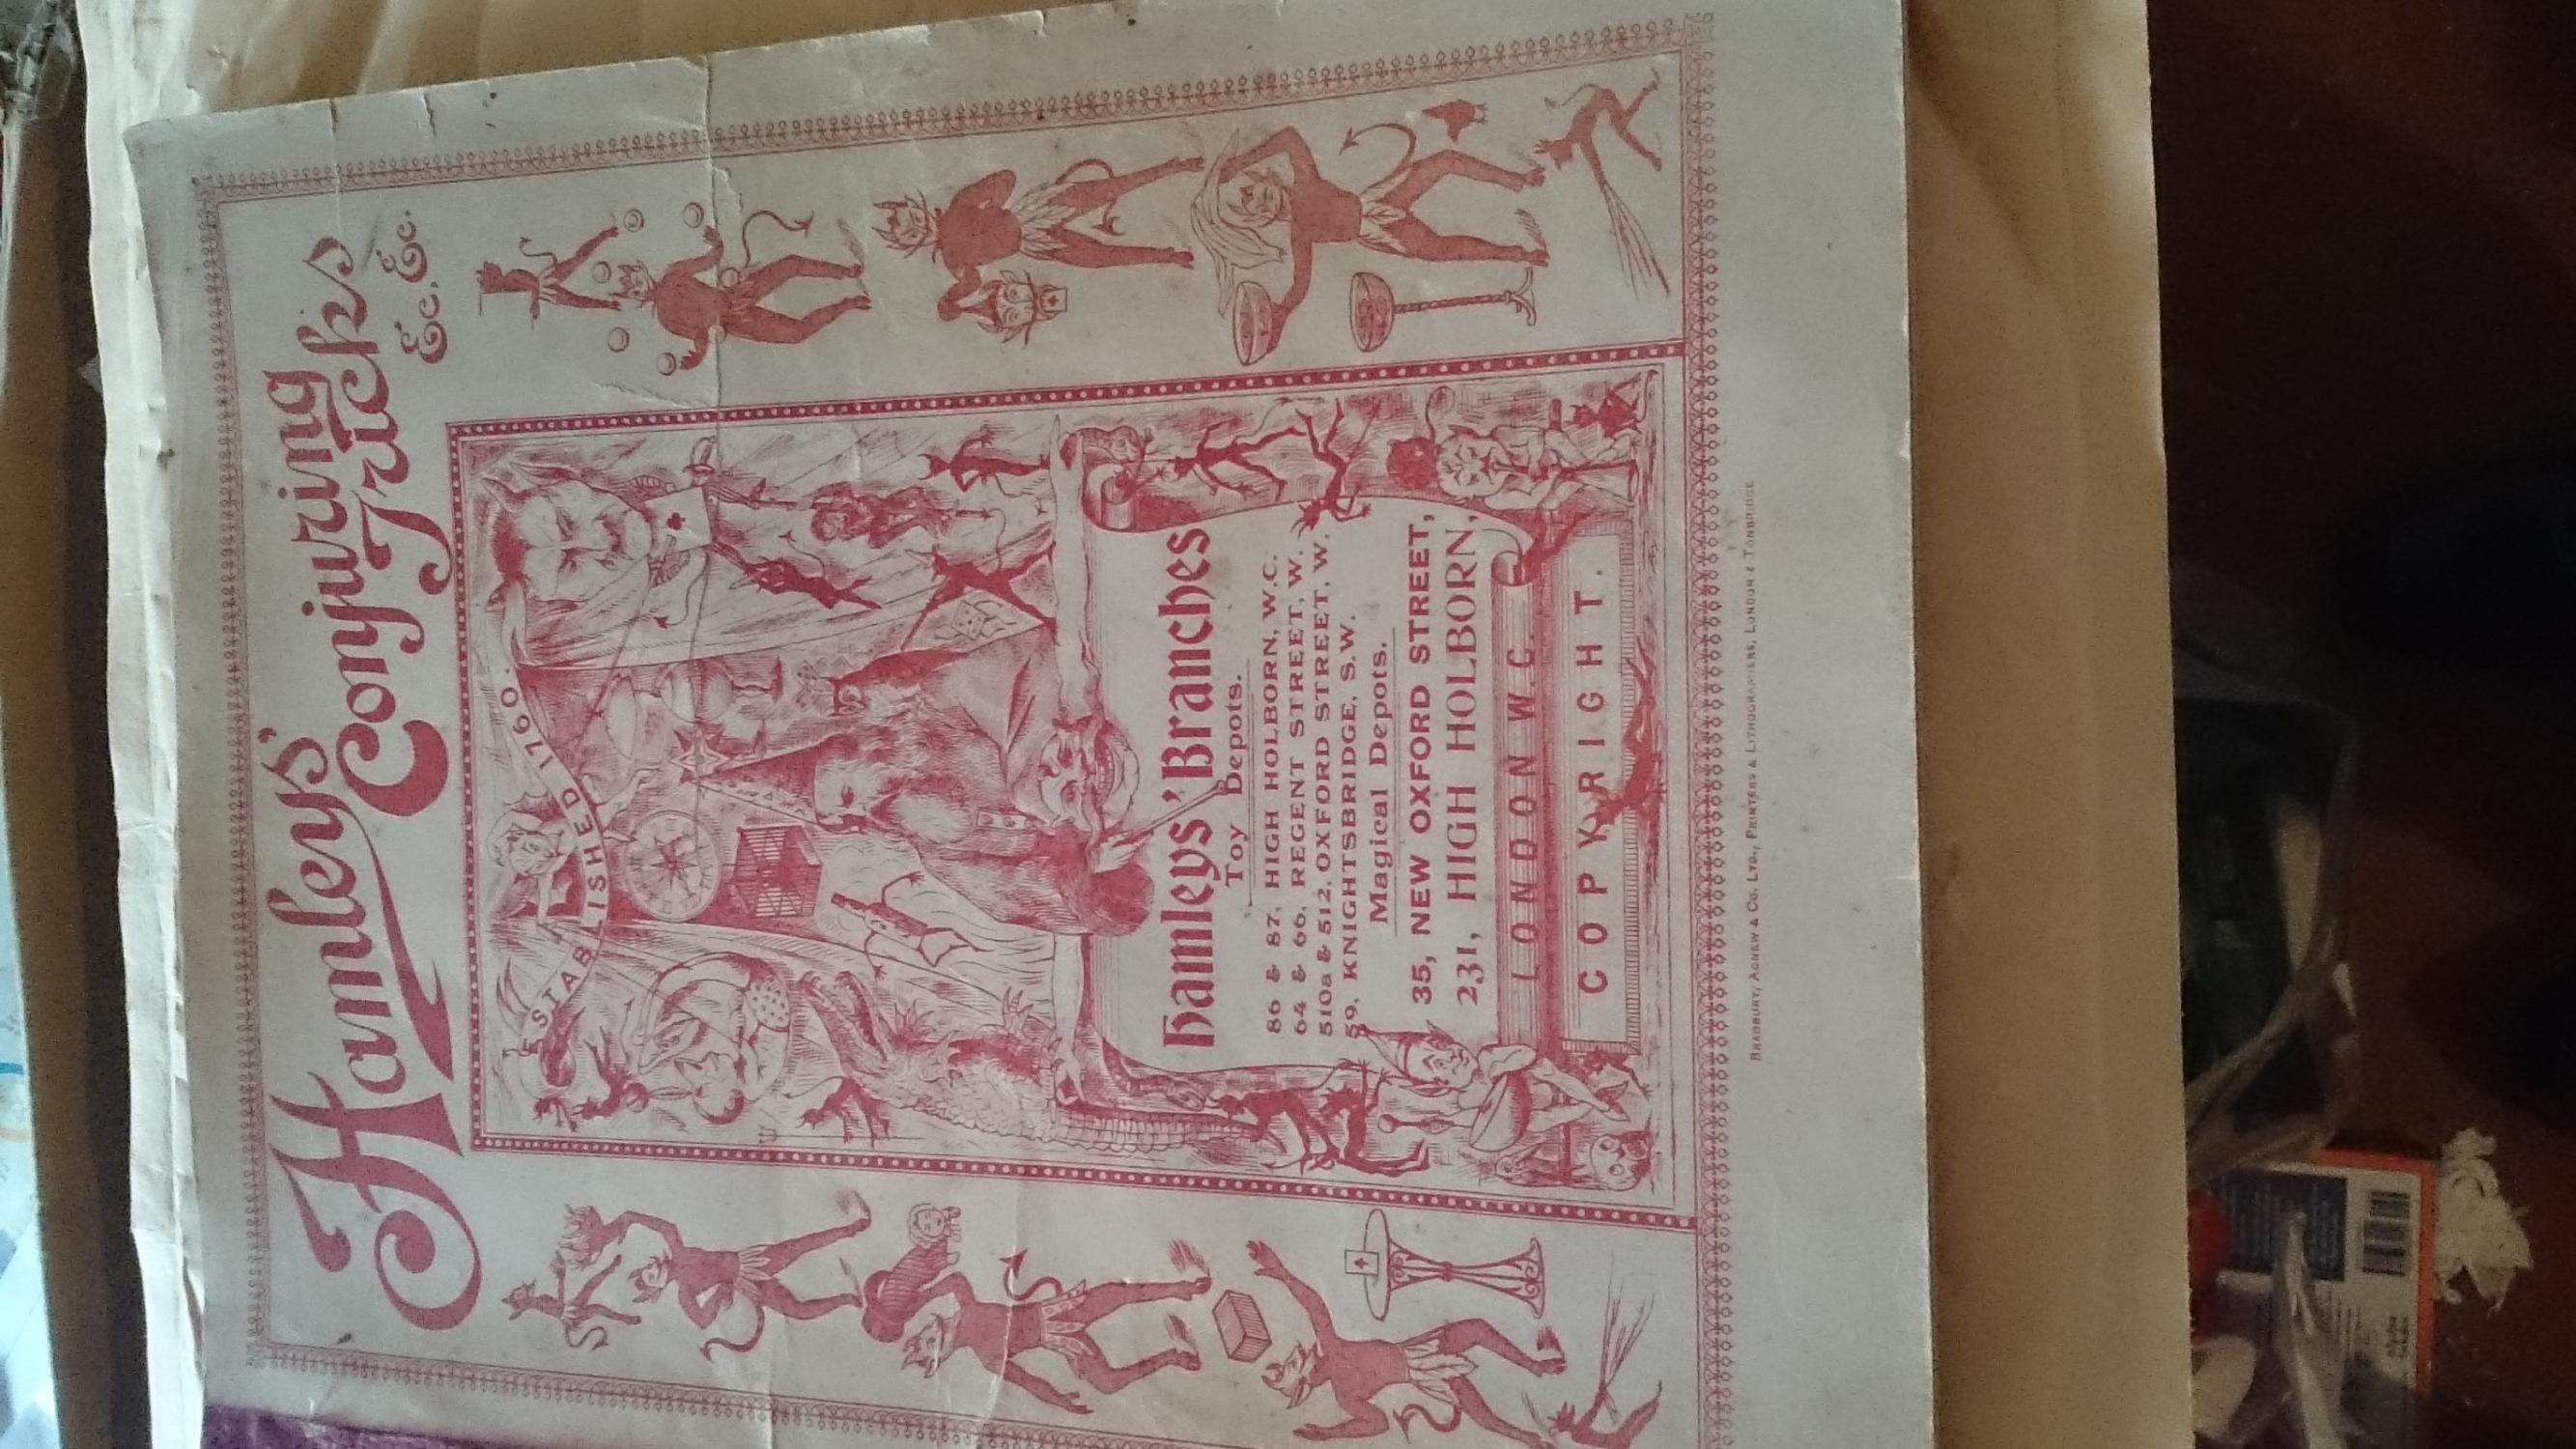 Hamleys Illustrated Catalogue of Conjuring tricks magical apparatus ingenious puzzles etc Good Softcover